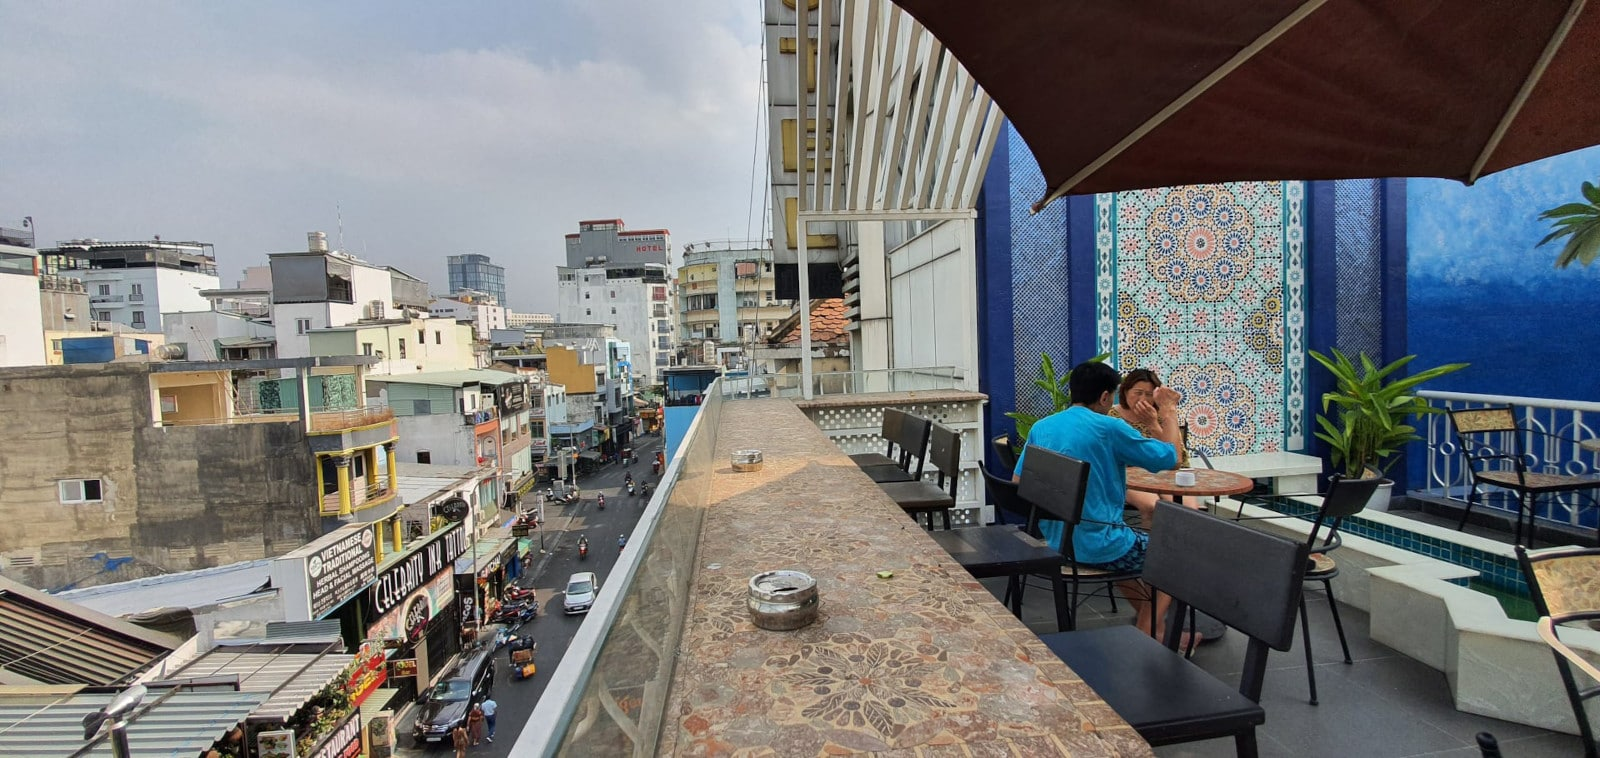 Image of people on the balcony at Aquarizon Boutique Hostel in HCMC, Vietnam